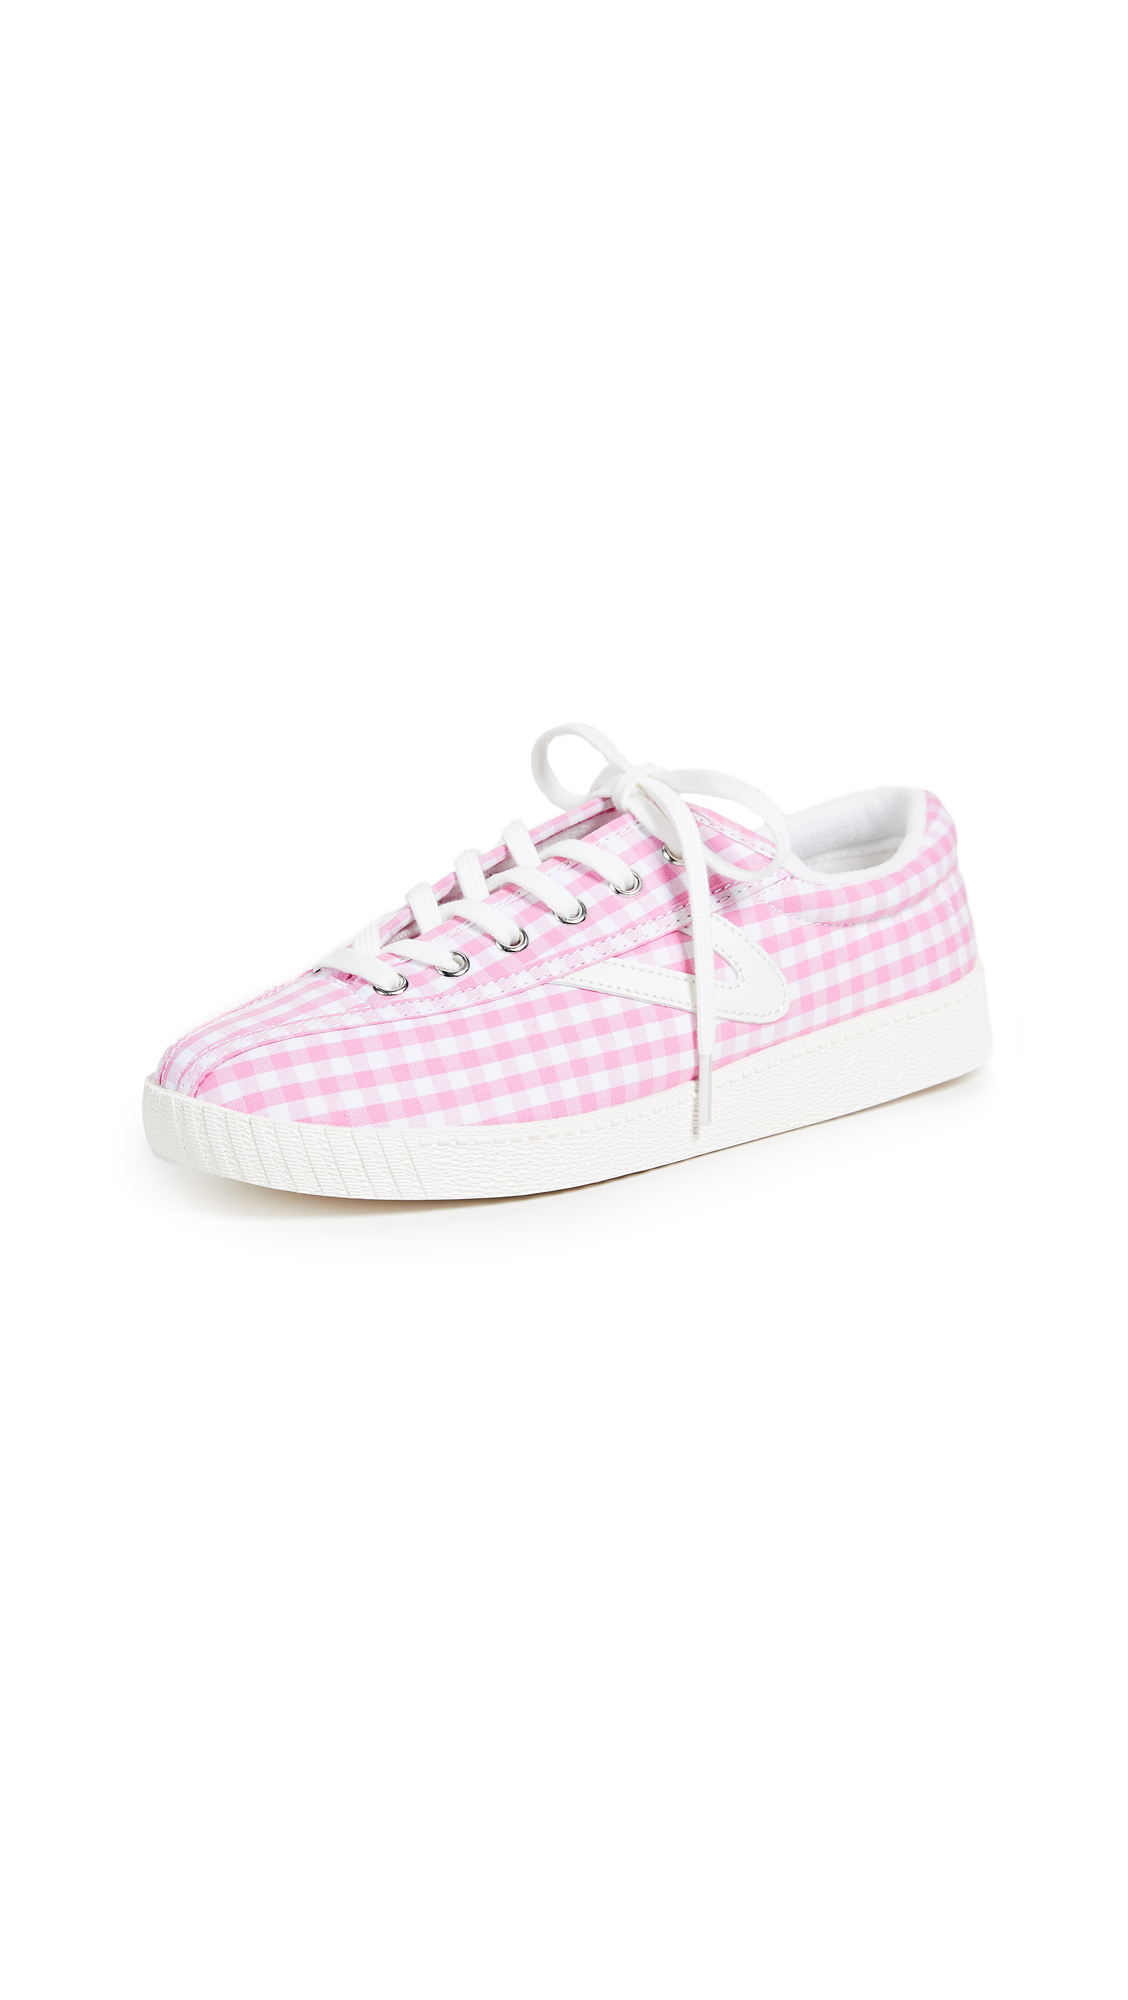 Tretorn Nylite Gingham Sneakers - Light Pink/Vintage White